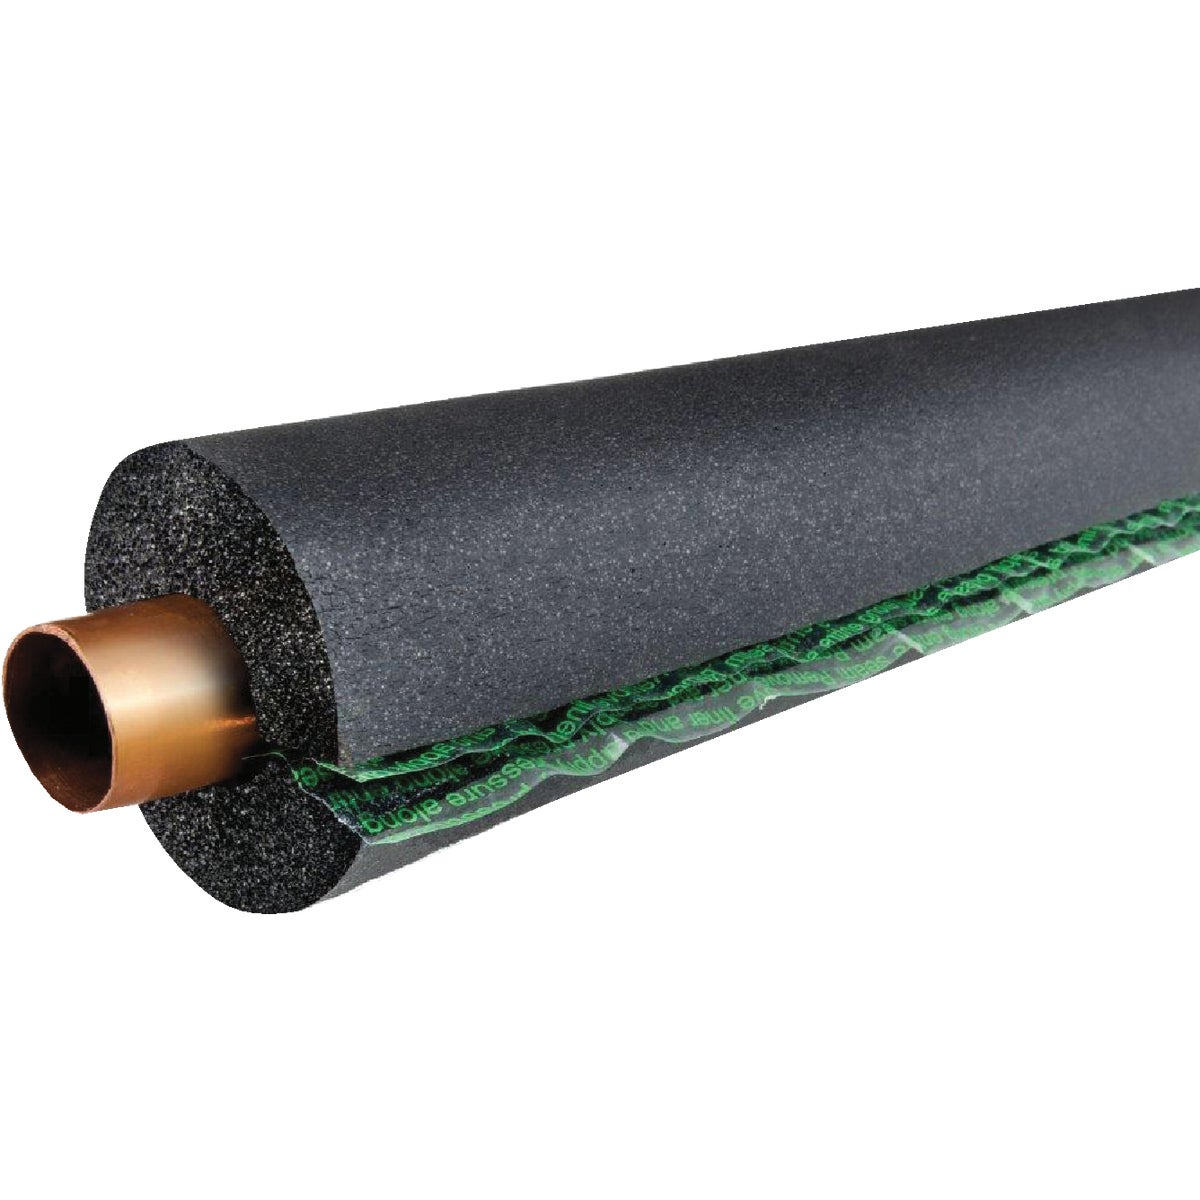 "7/8""IDX6'PIPE INSULATION - PB05078TWTU0 by I T P Ltd"